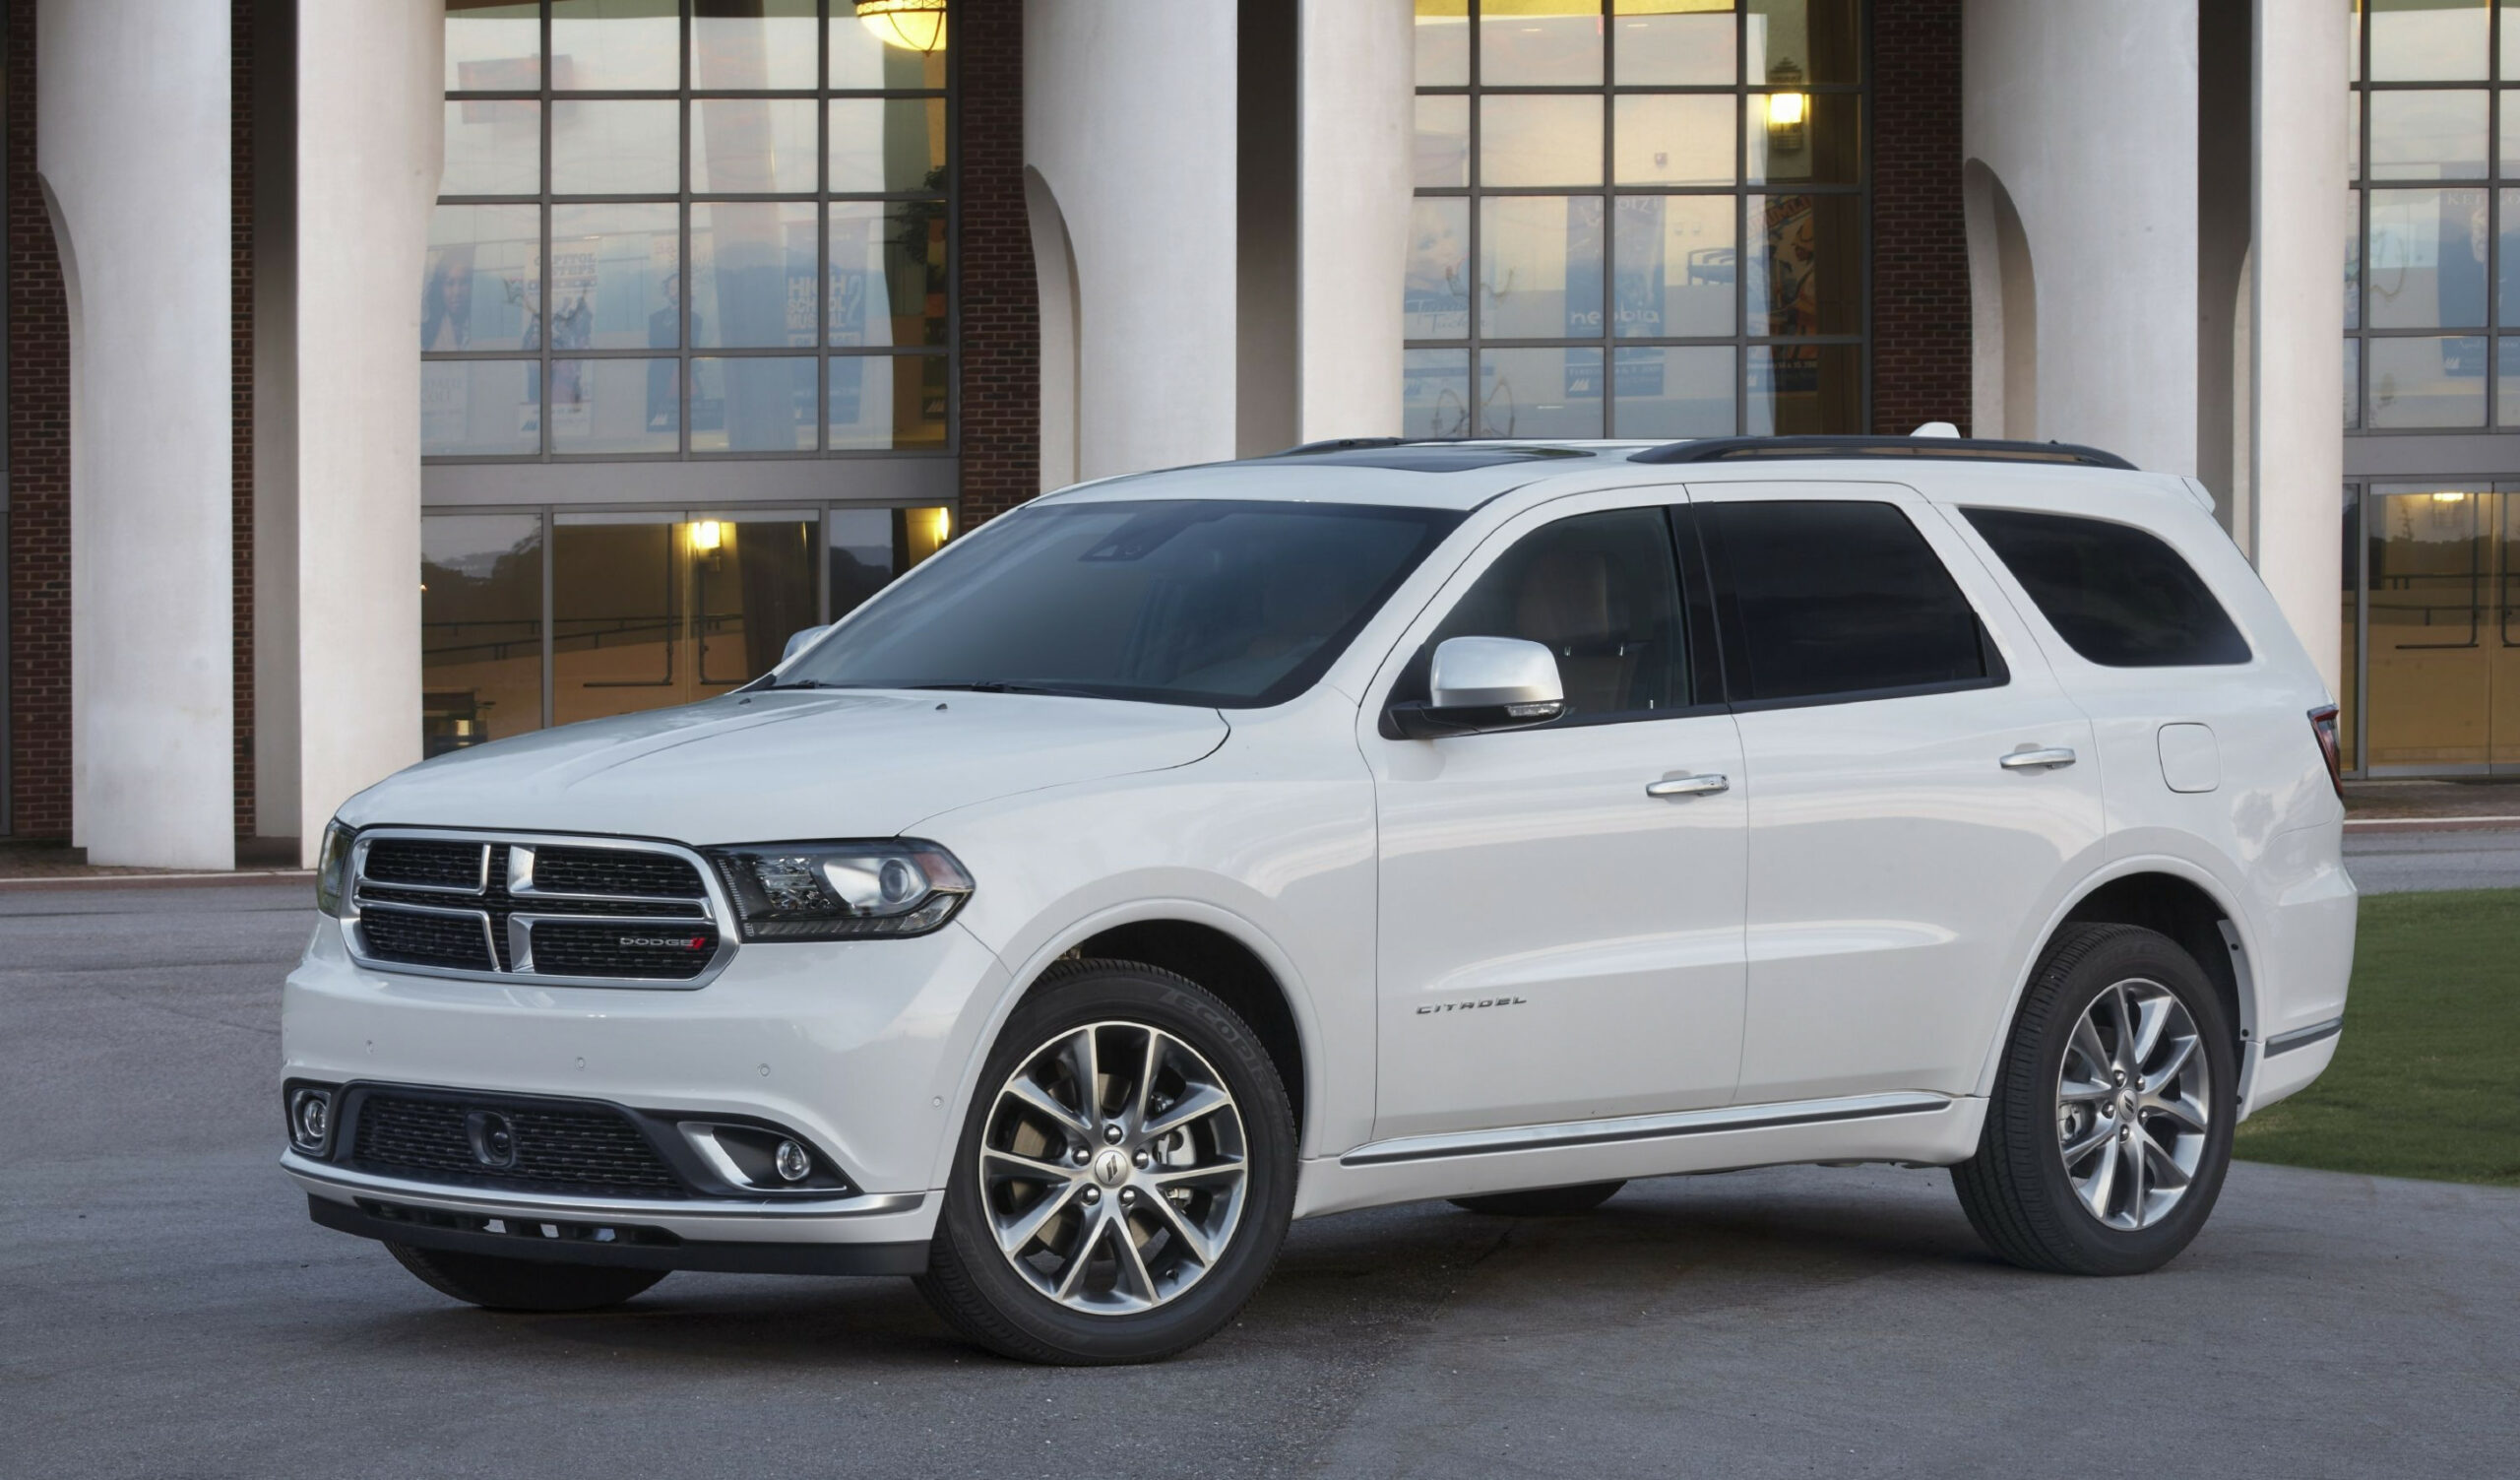 7 Dodge Durango Review, Pricing, and Specs - 2020 dodge durango citadel